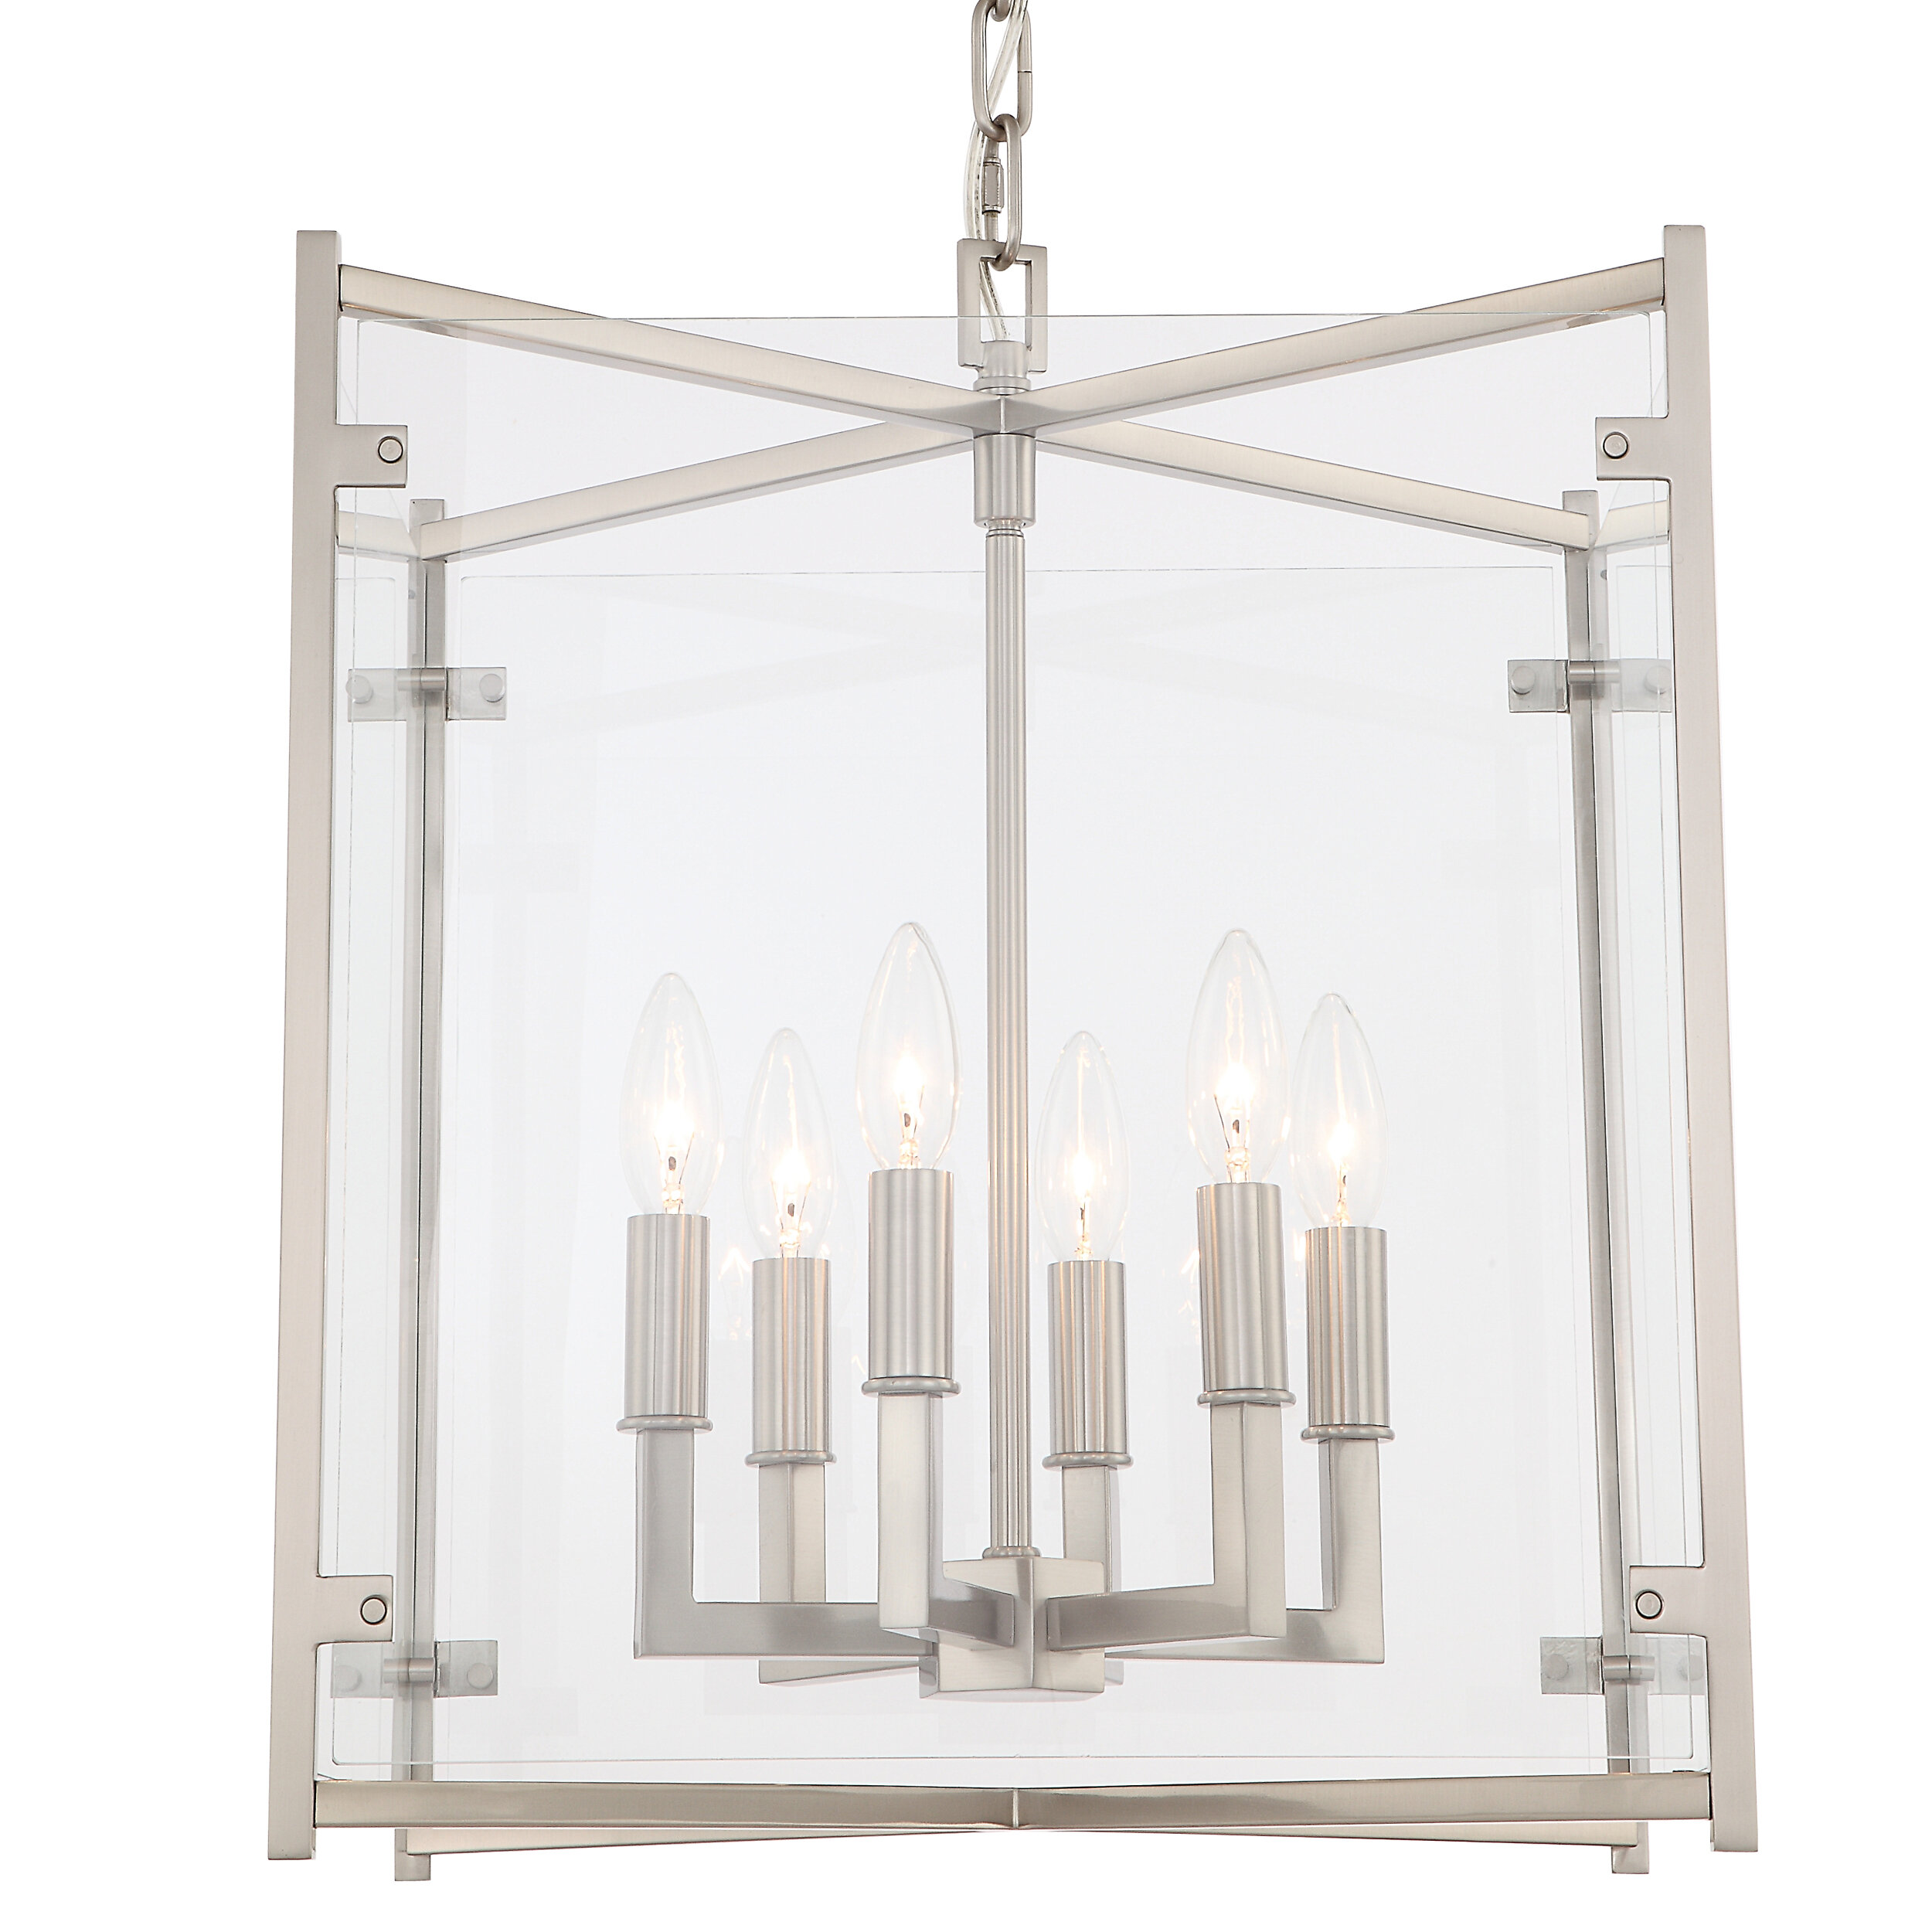 Alcott Hill Lechner 6 Light Candle Style Square Rectangle Chandelier Wayfair